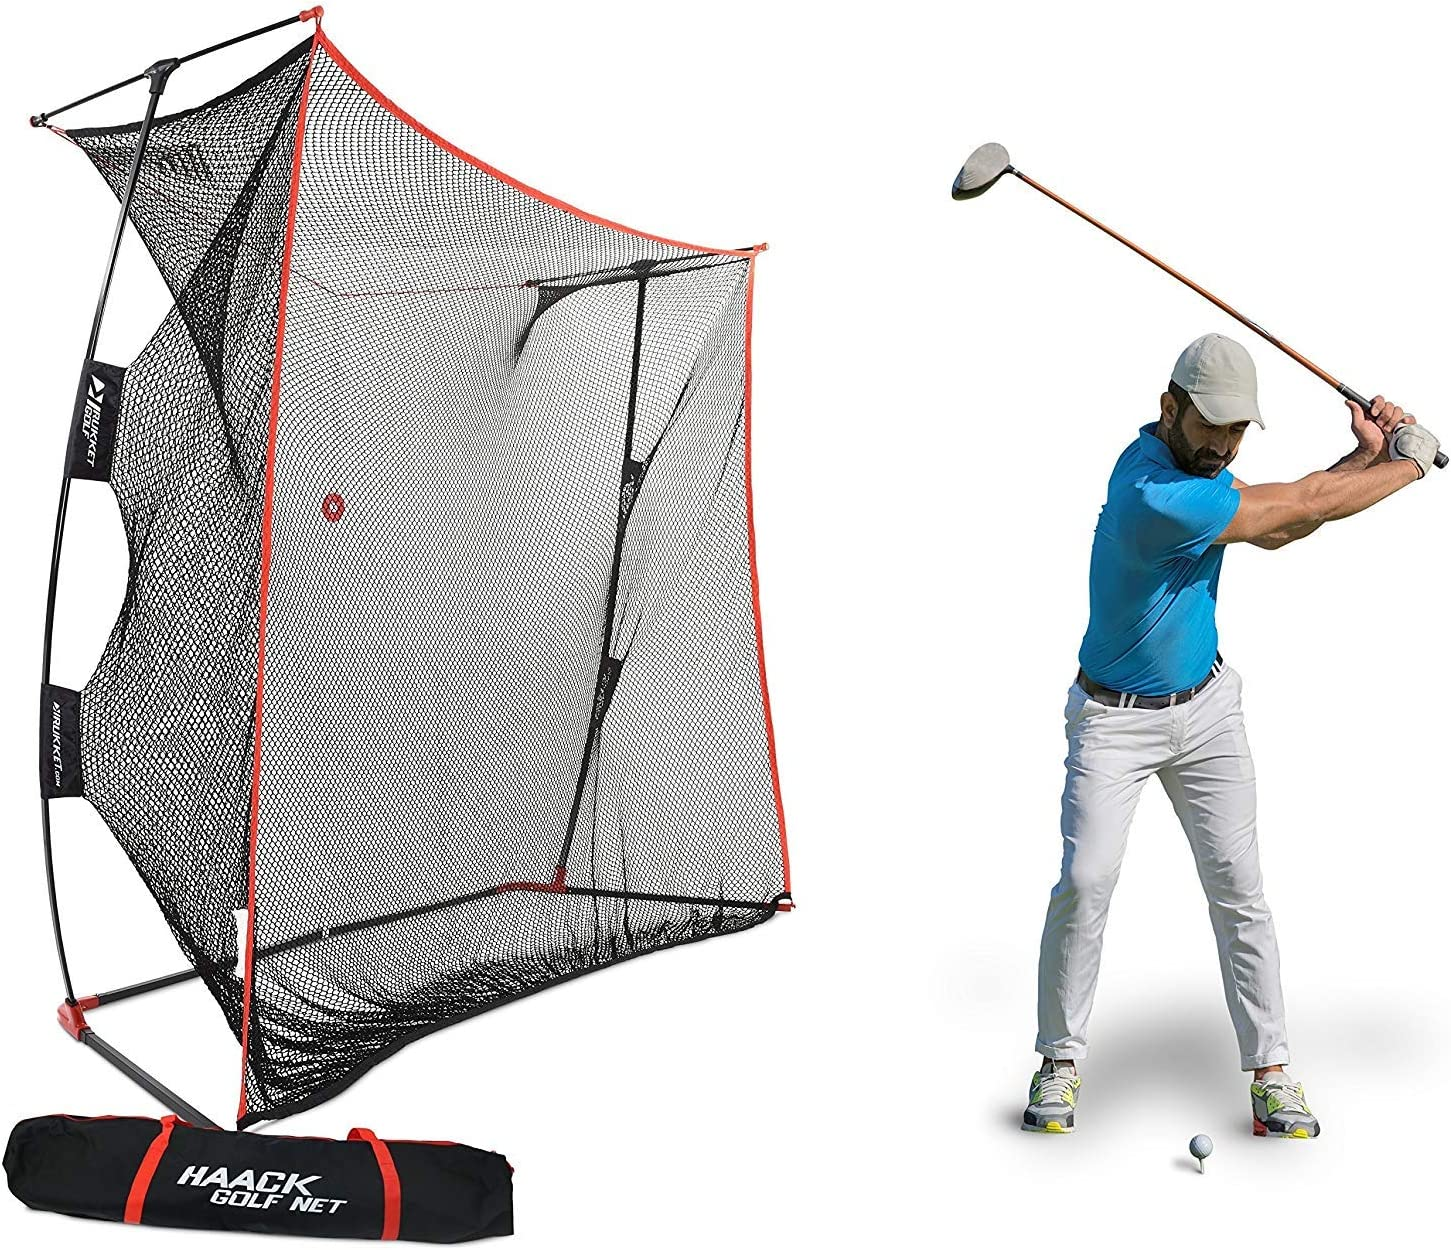 Rukket 9x7x3ft Haack Golf Net Pro Practice Driving Indoor and Outdoor Professional Golfing at Home Swing Training Aids by SEC Coach Chris Haack